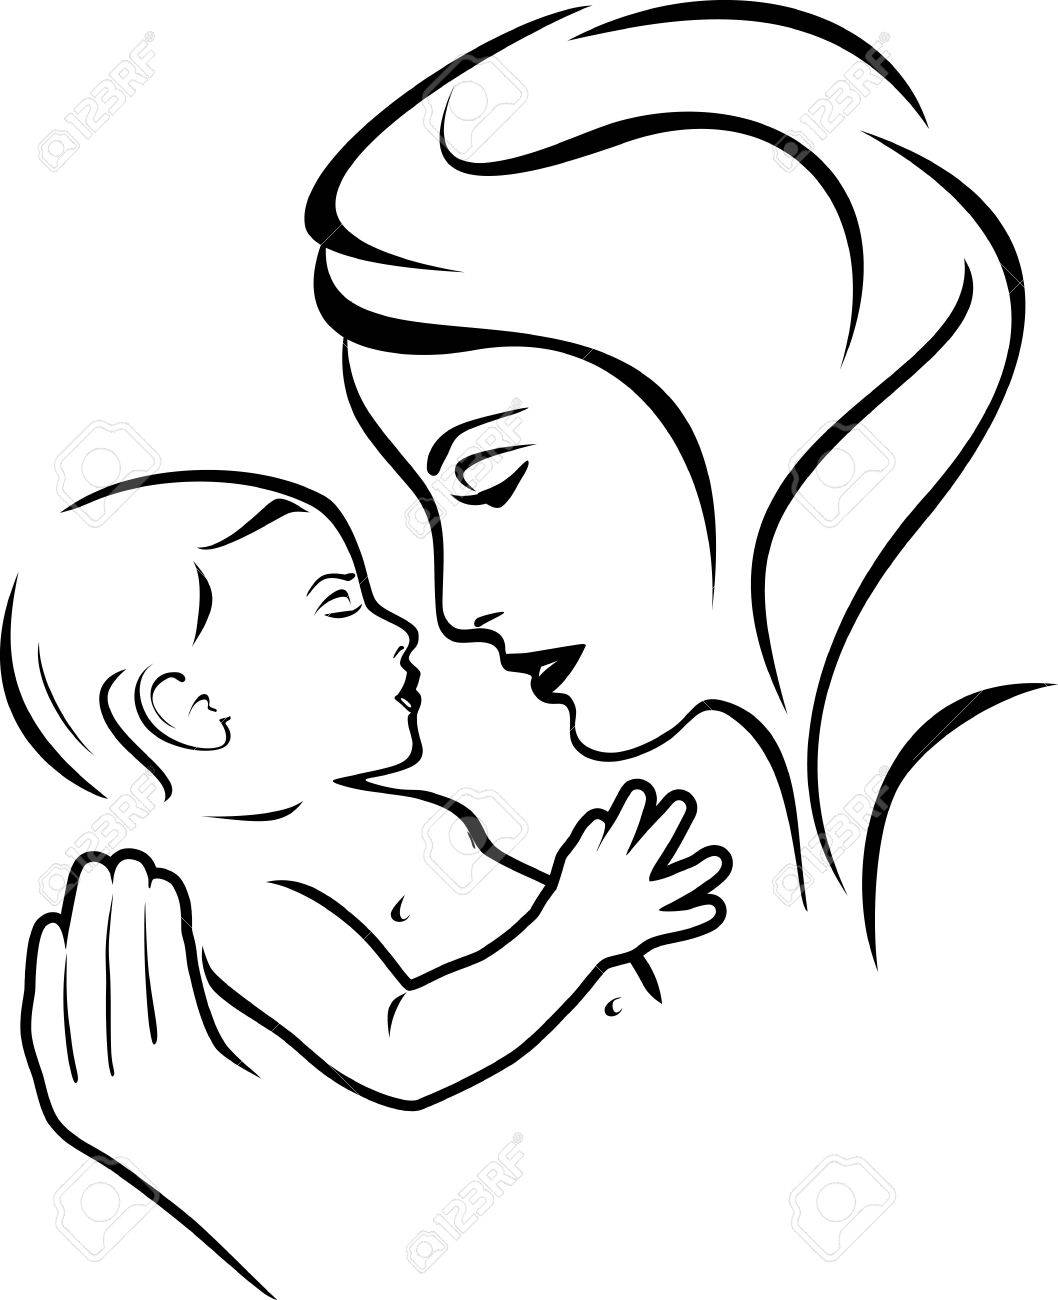 Baby And Mother Black And White Royalty Free Cliparts Vectors And Stock Illustration Image 56921388